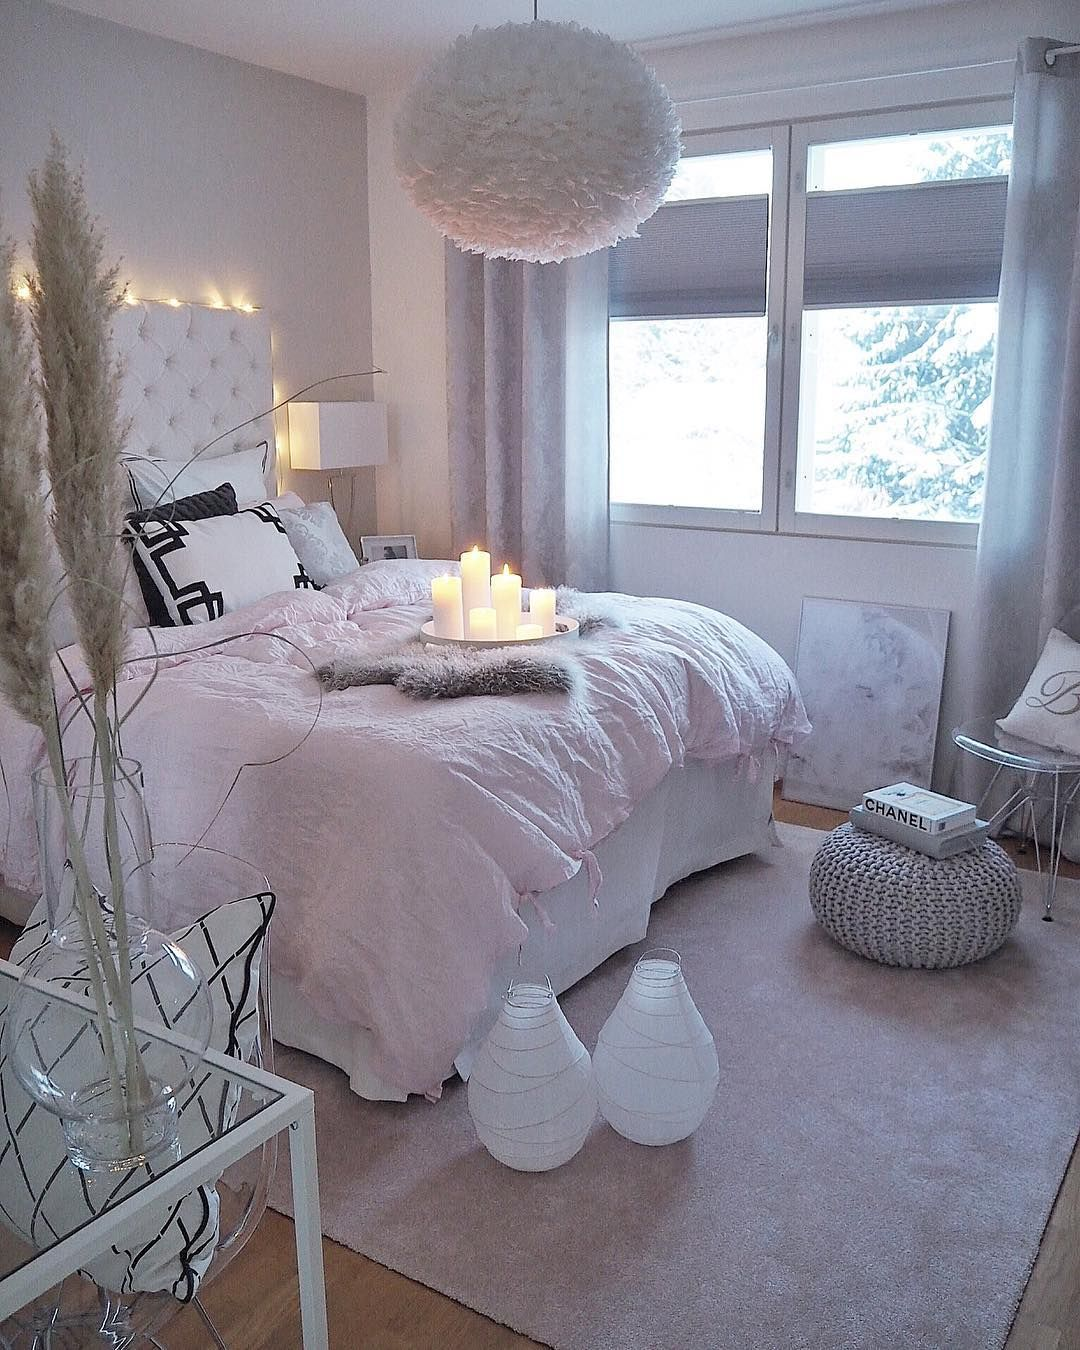 Home Decor Lifestyle Kids On Instagram Lazy Sunday It S Horrible Snowstorm Outside Stylish Bedroom Design Bedroom Design Trends Stylish Bedroom Home decor ideas bedroom